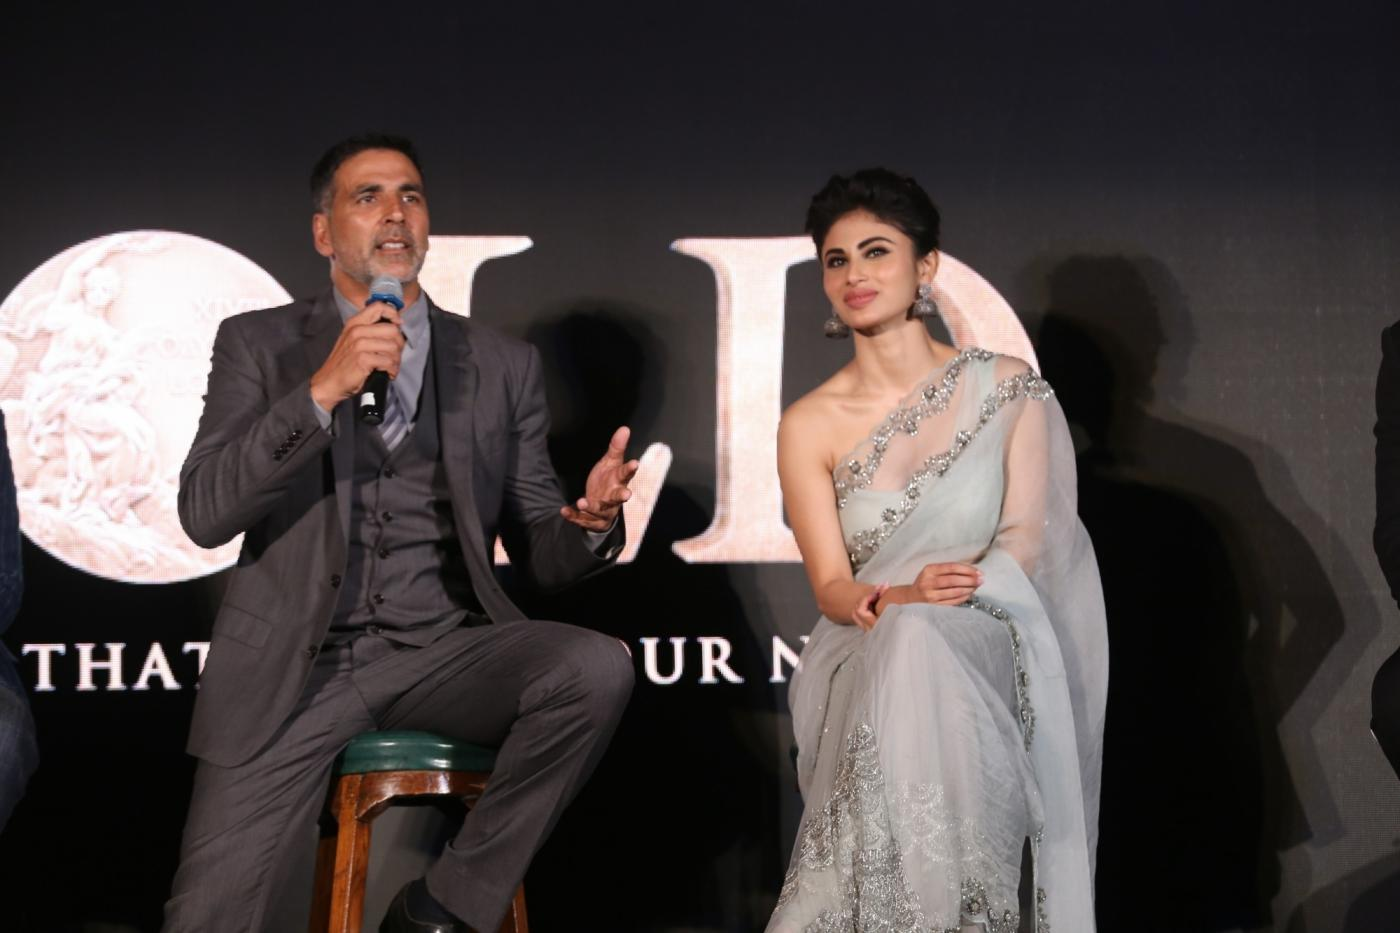 Mumbai: Actors Akshay Kumar and Mouni Roy at the launch of the first song from upcoming film 'Gold', titled 'Naino Ne Baandhi' in Mumbai on July 6, 2018. (Photo: IANS) by .